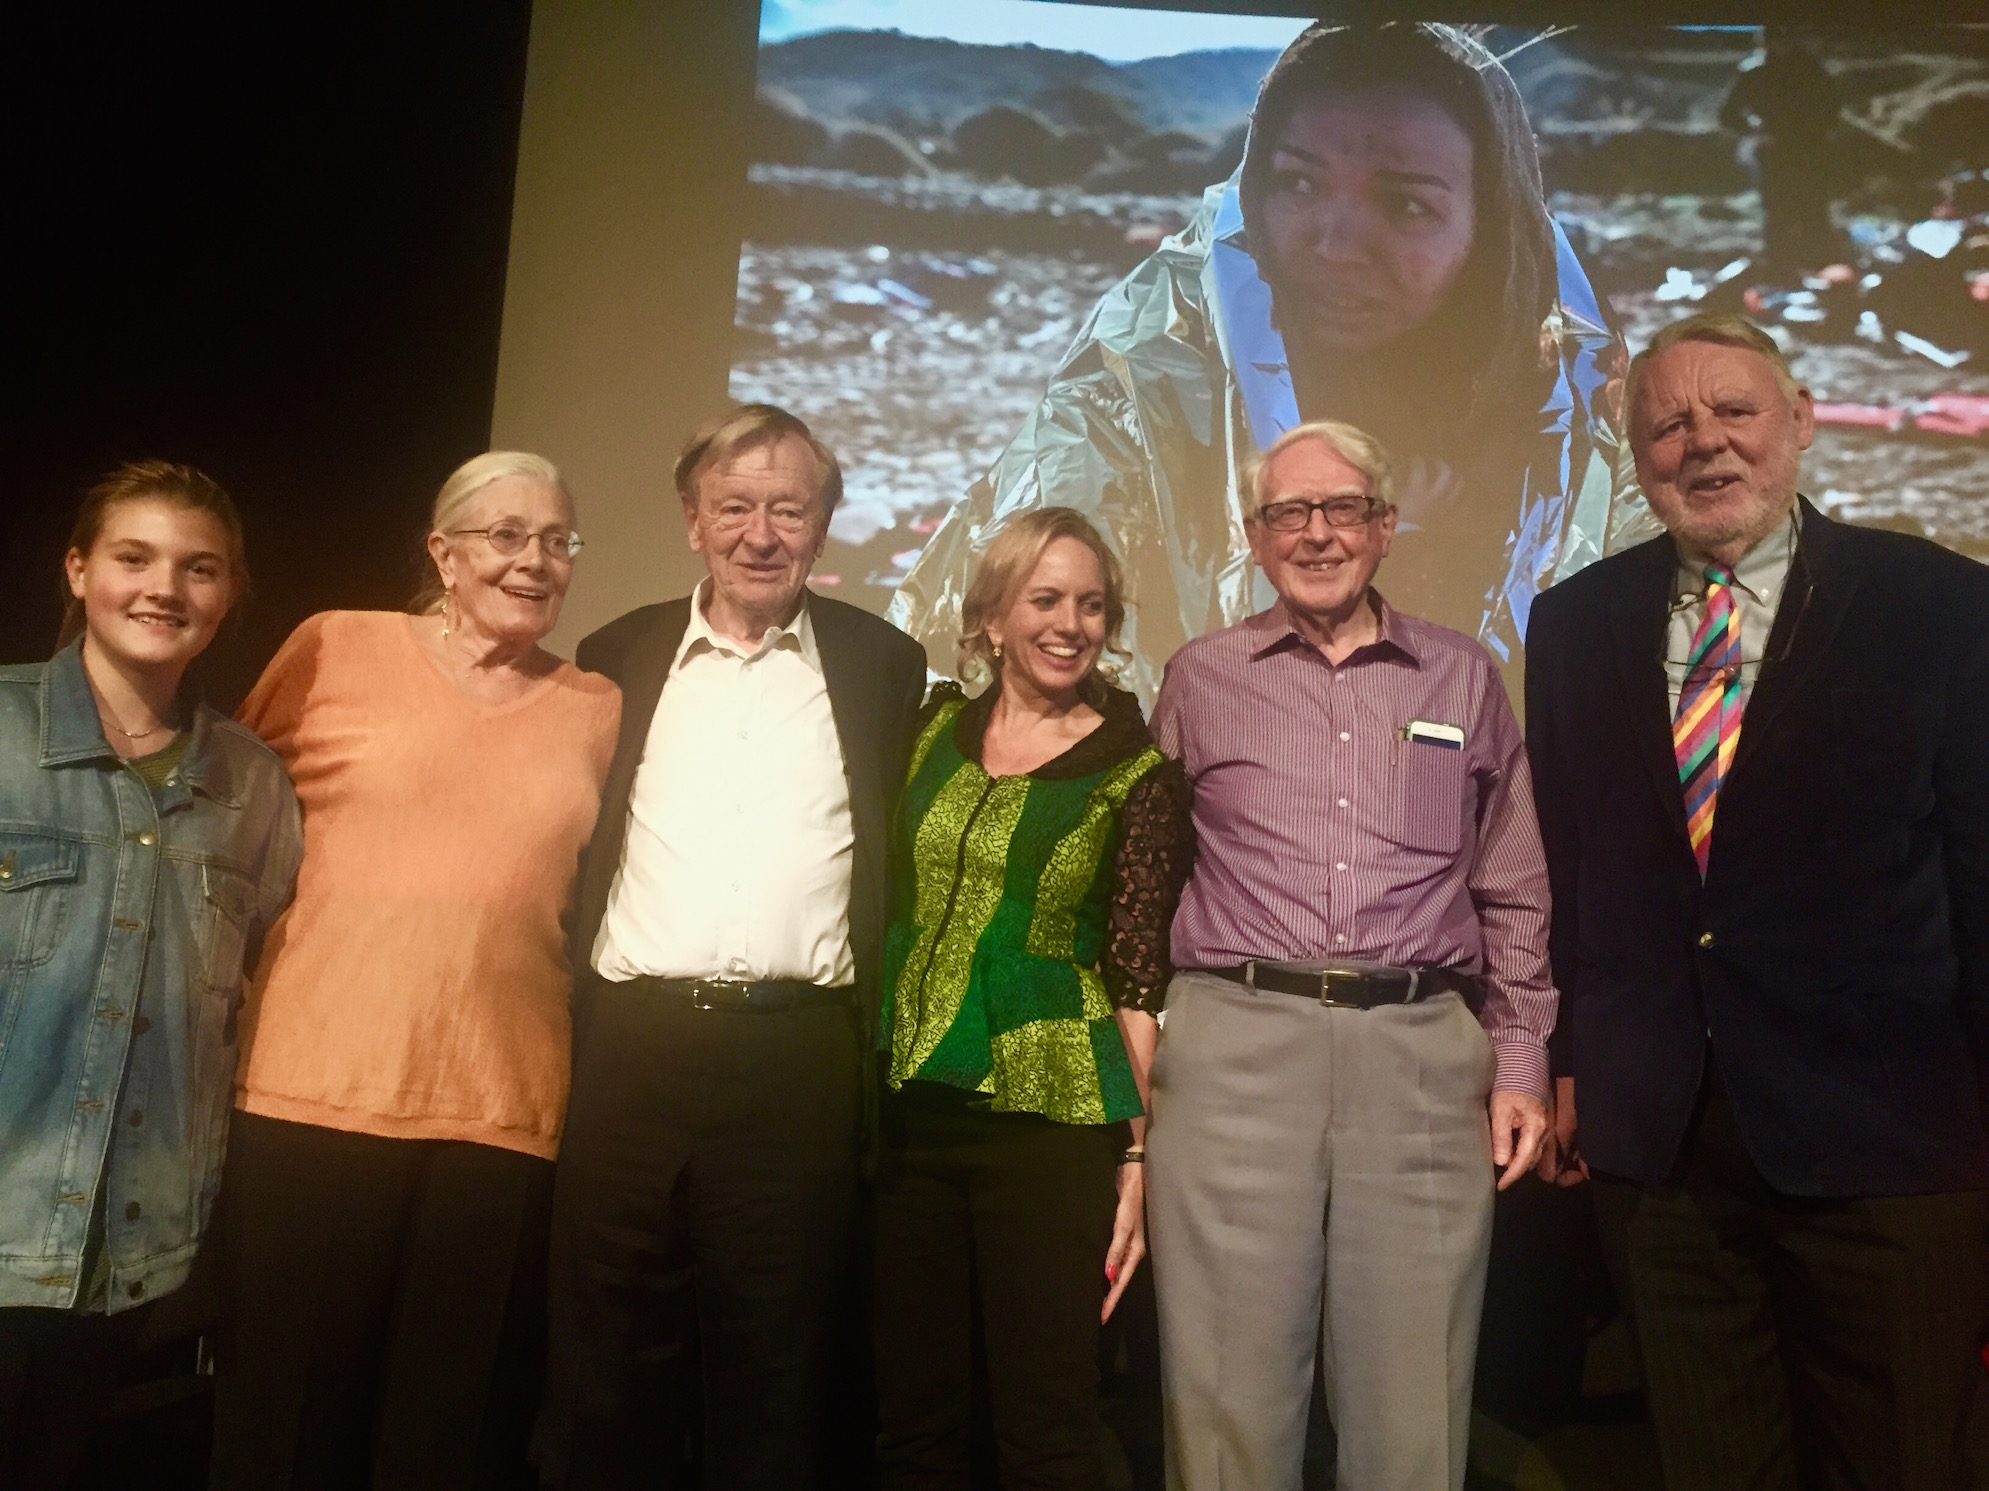 Vanessa Redgrave surrounded by her granddaughter,Lord (Alf) Dubs, Kirsty Brimelow QC and Terry Waite